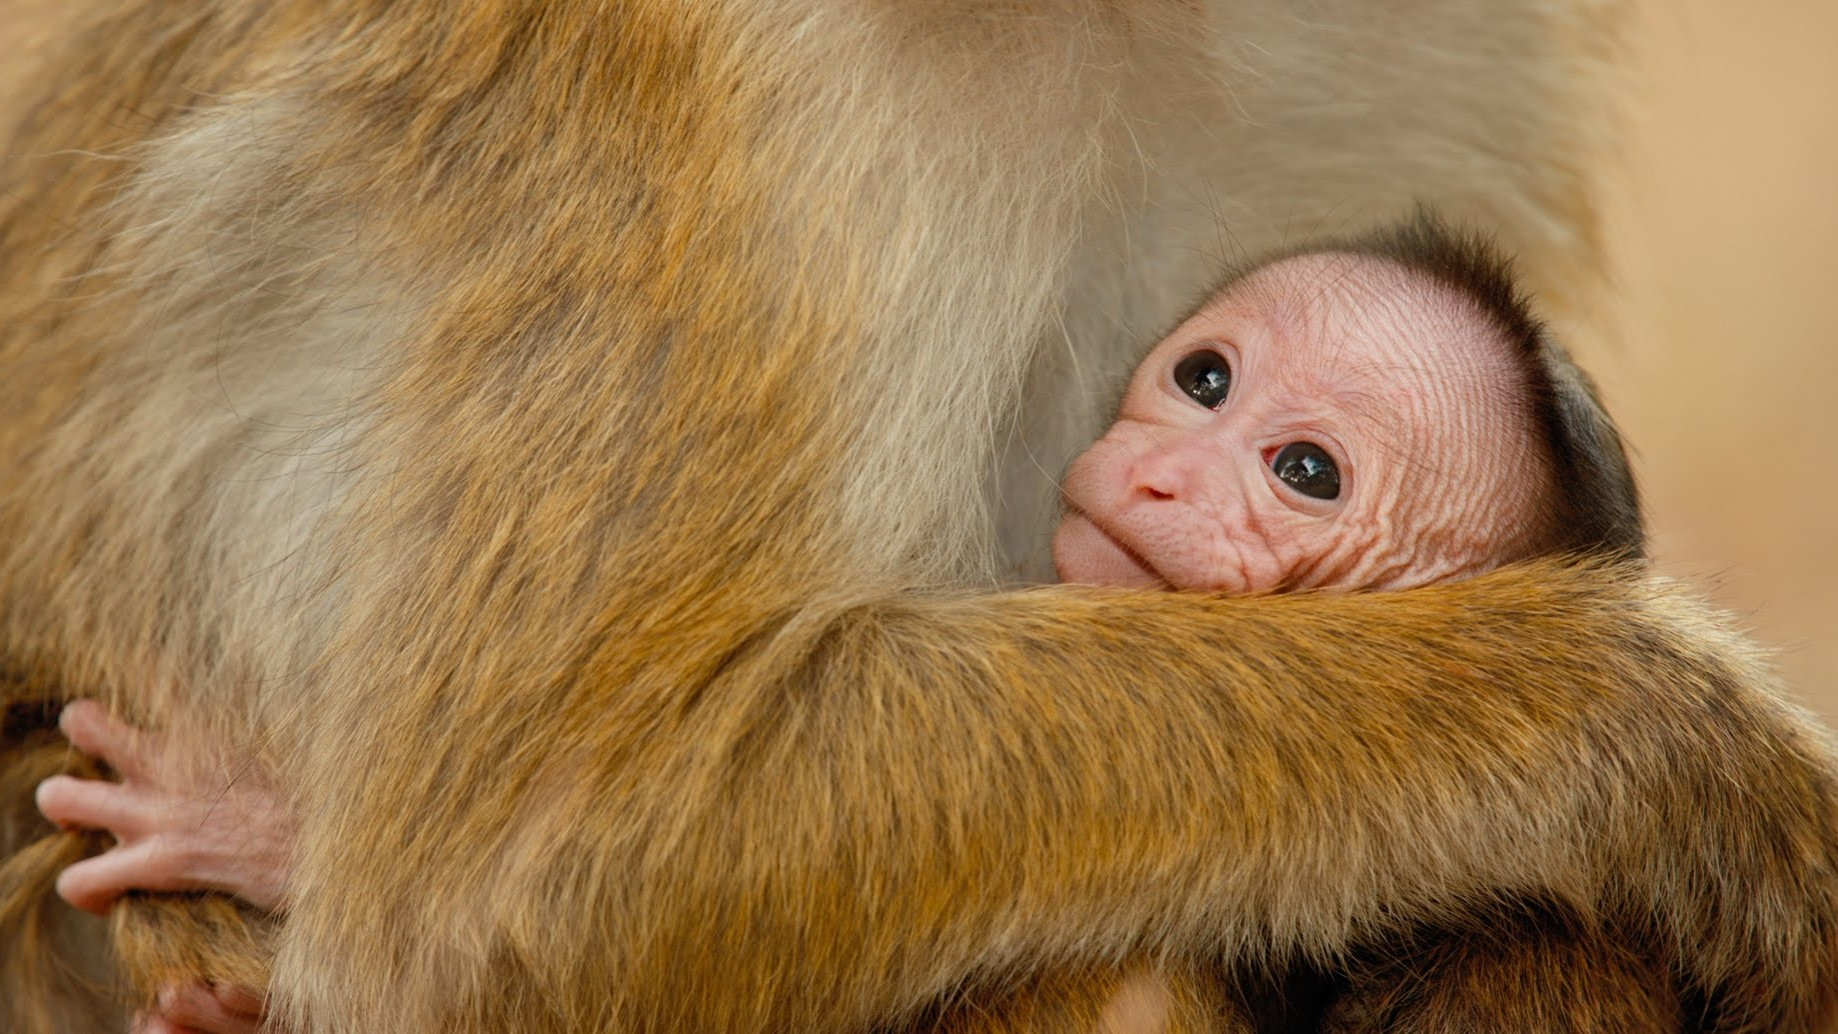 A Thank You from Disneynature